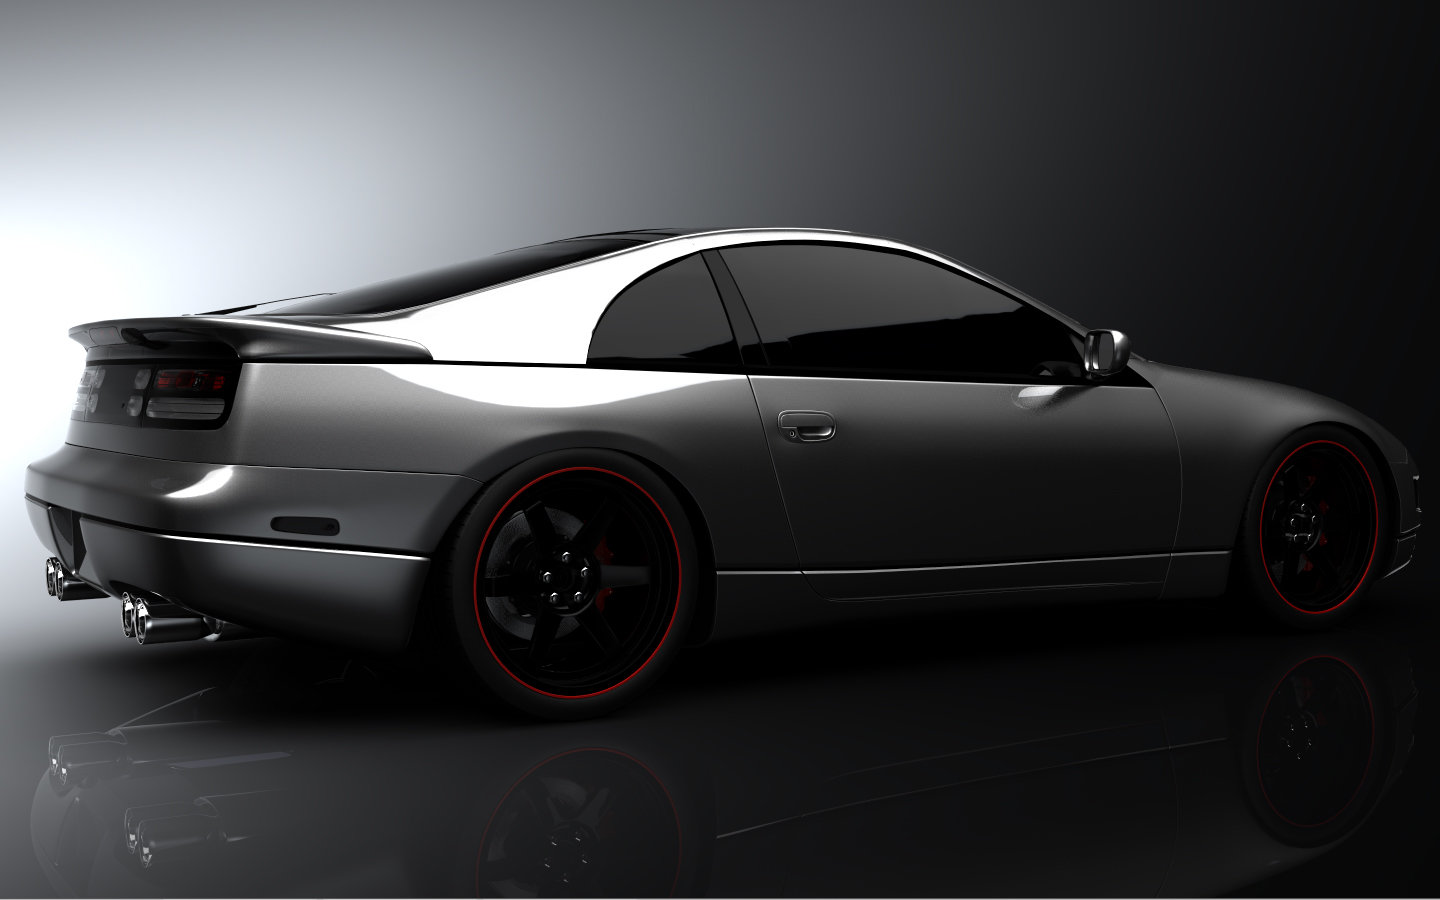 Free Nissan 300ZX high quality wallpaper ID:333745 for hd 1440x900 desktop